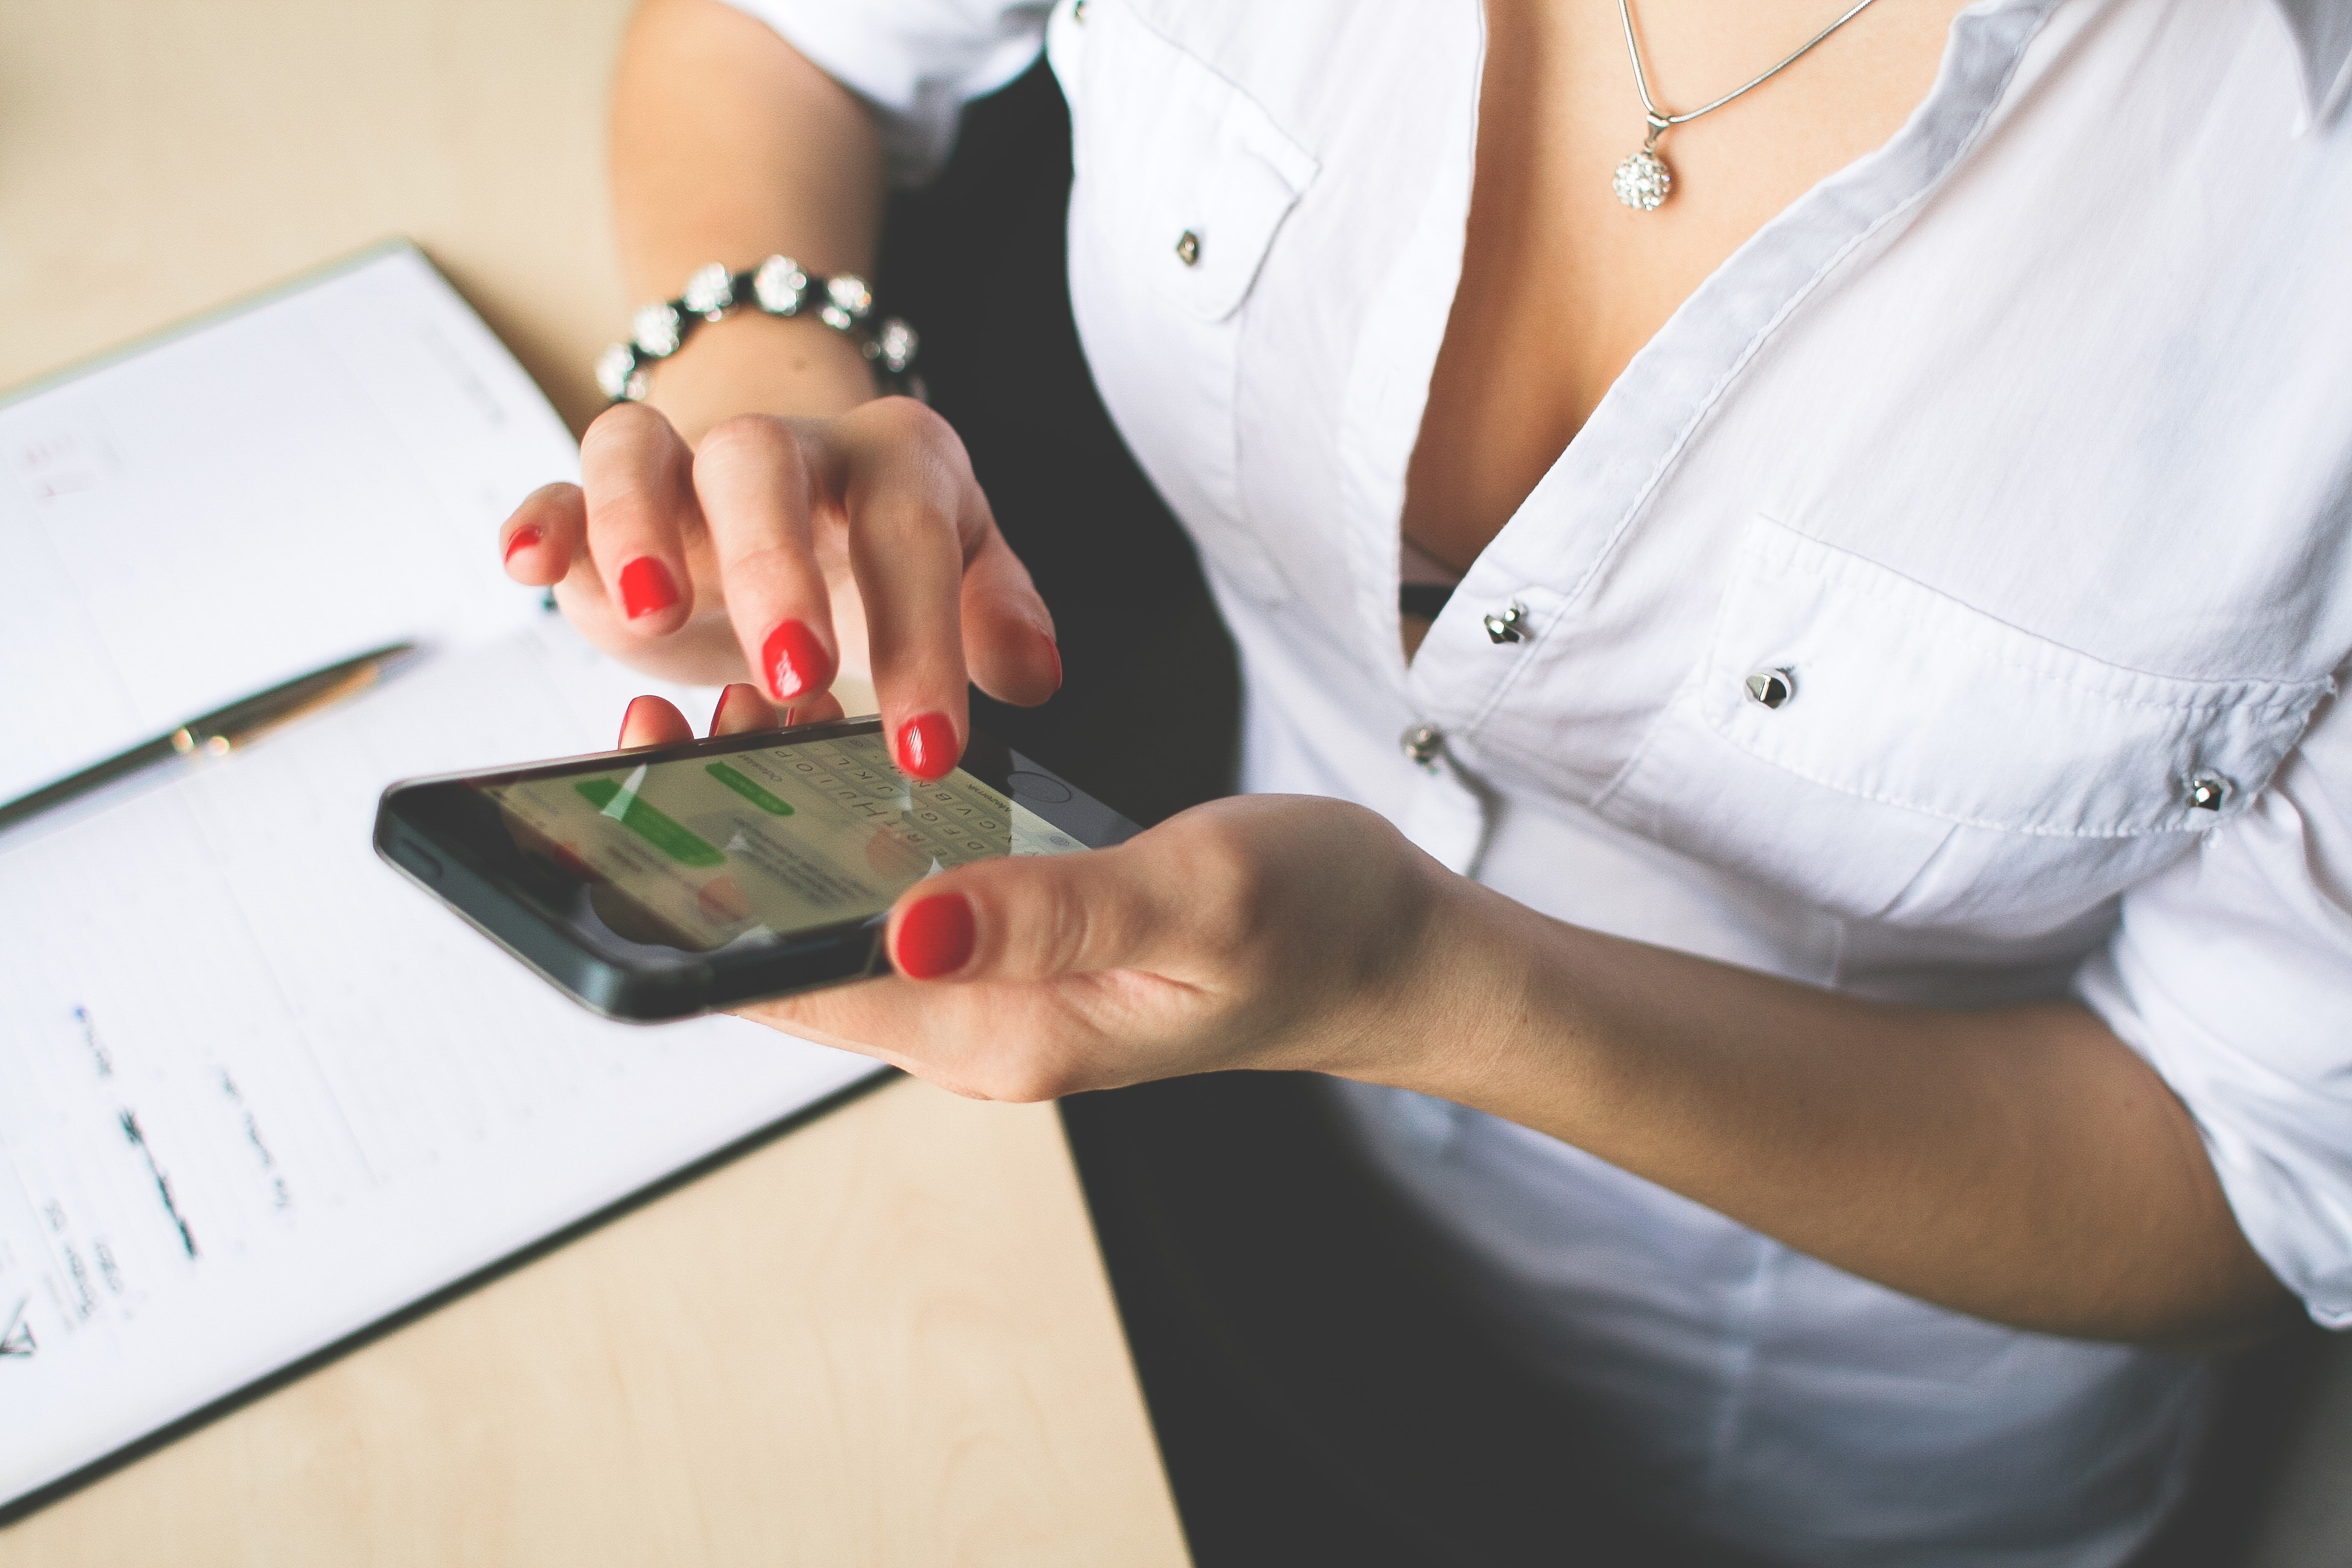 Woman in white button up top and holding black android smartphone photo